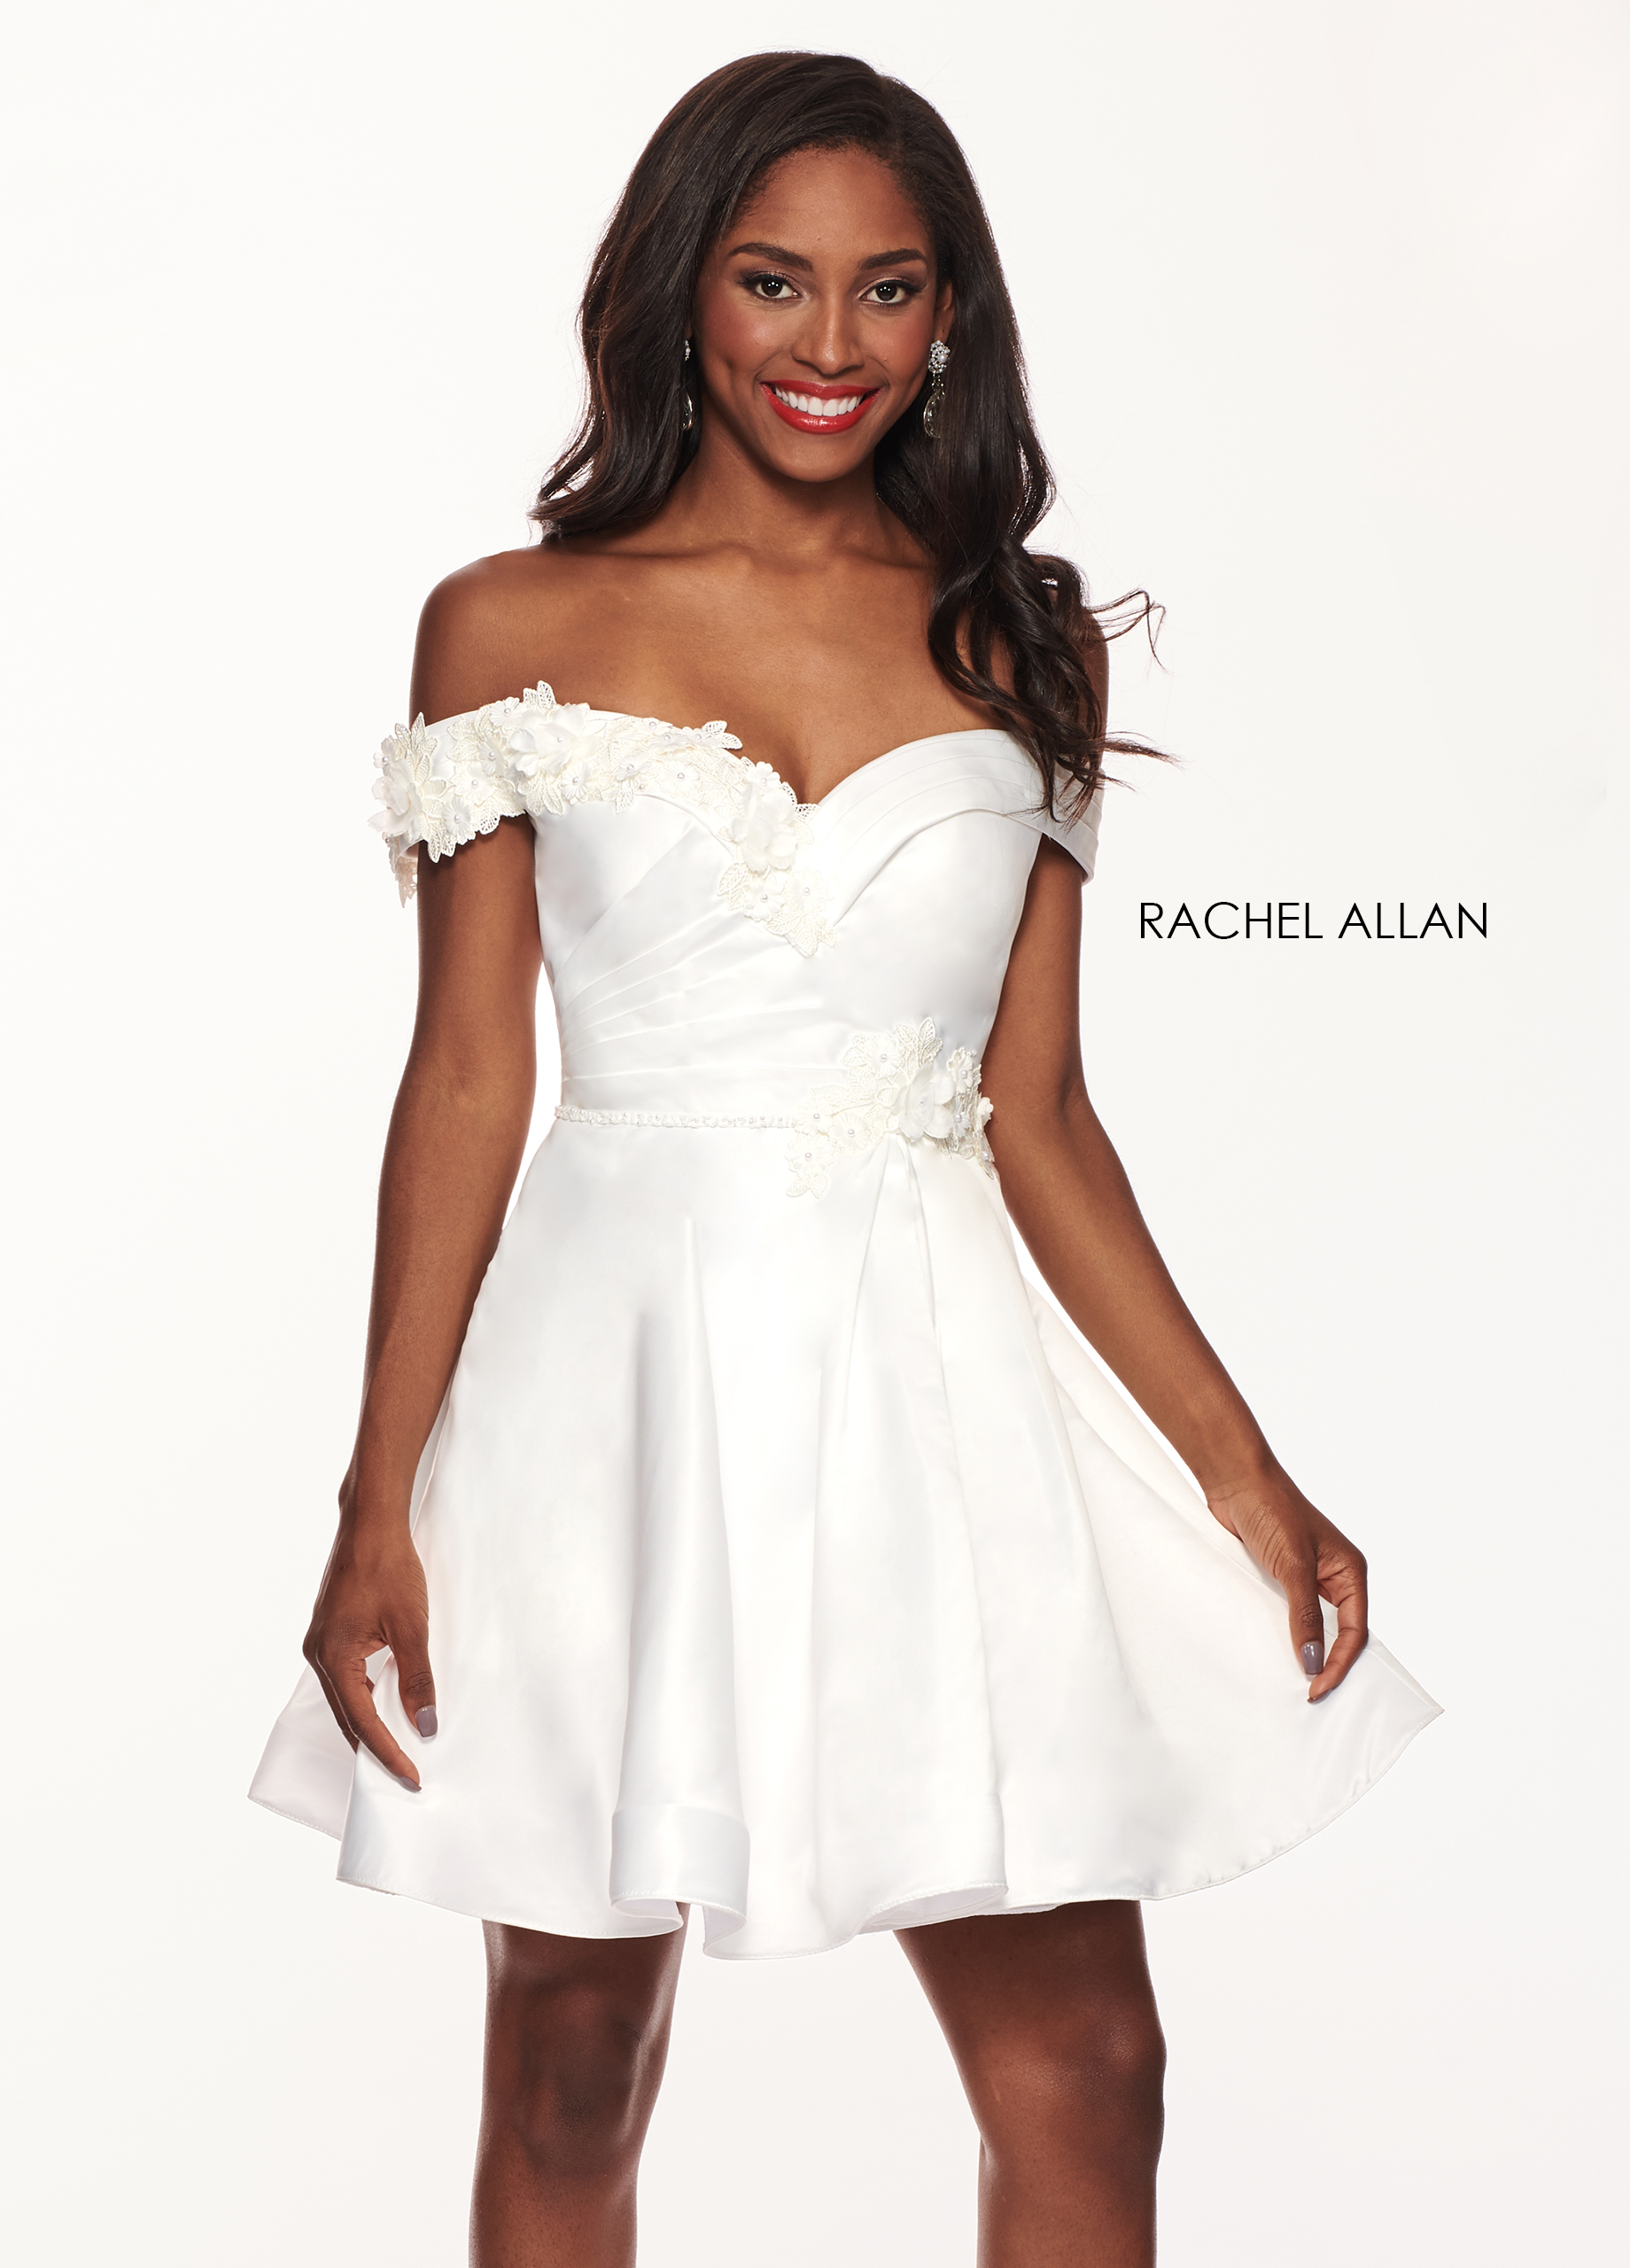 Off The Shoulder A-Line Cocktail Dresses in White Color